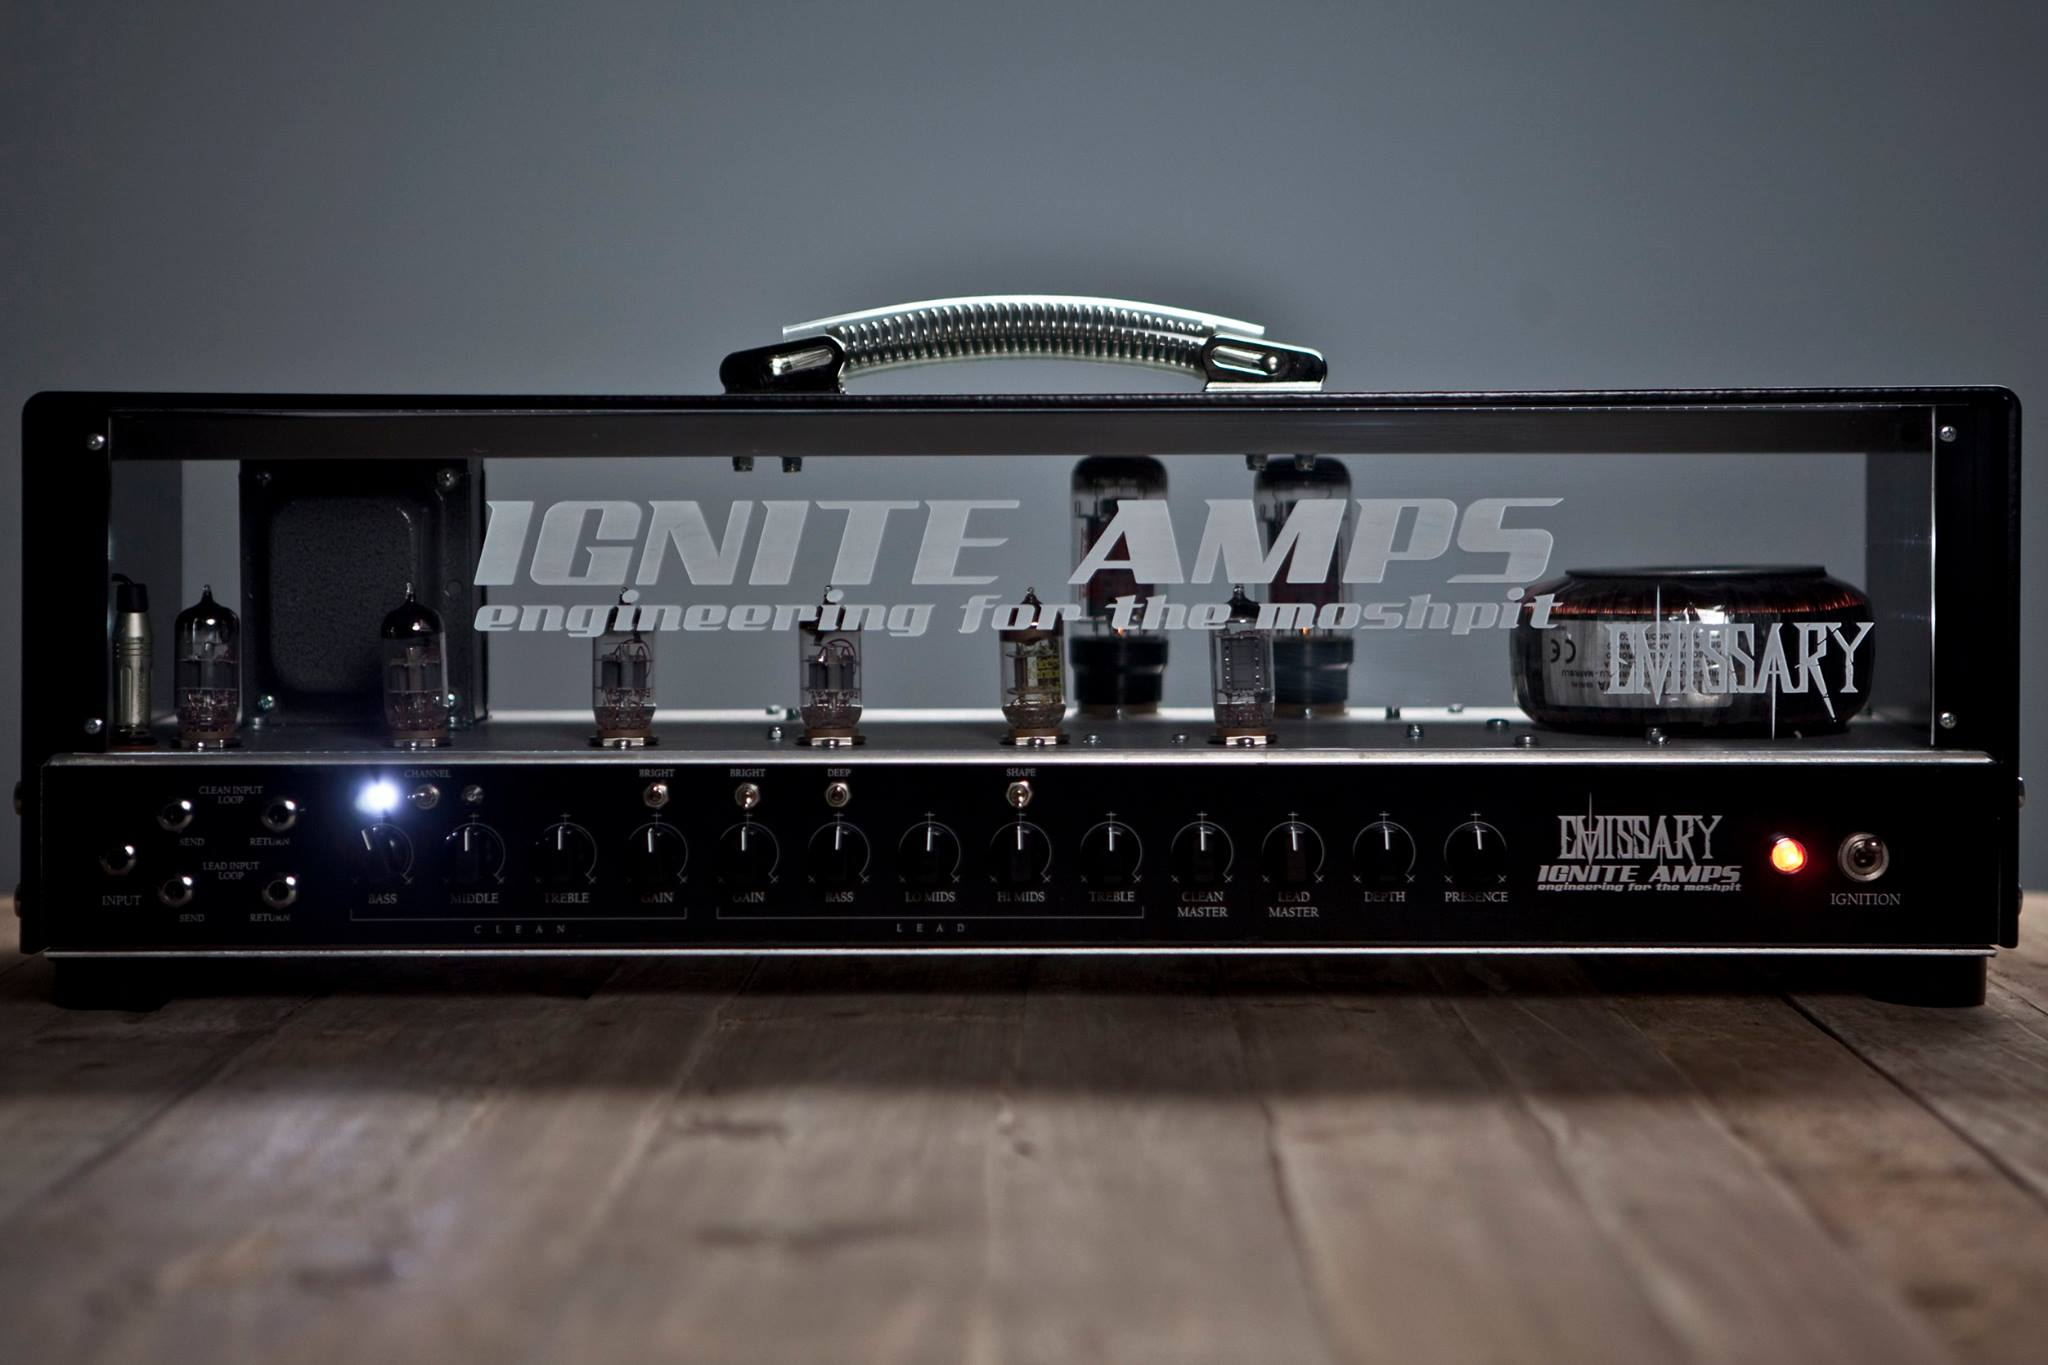 IGNITE AMPS - Engineering for the moshpit